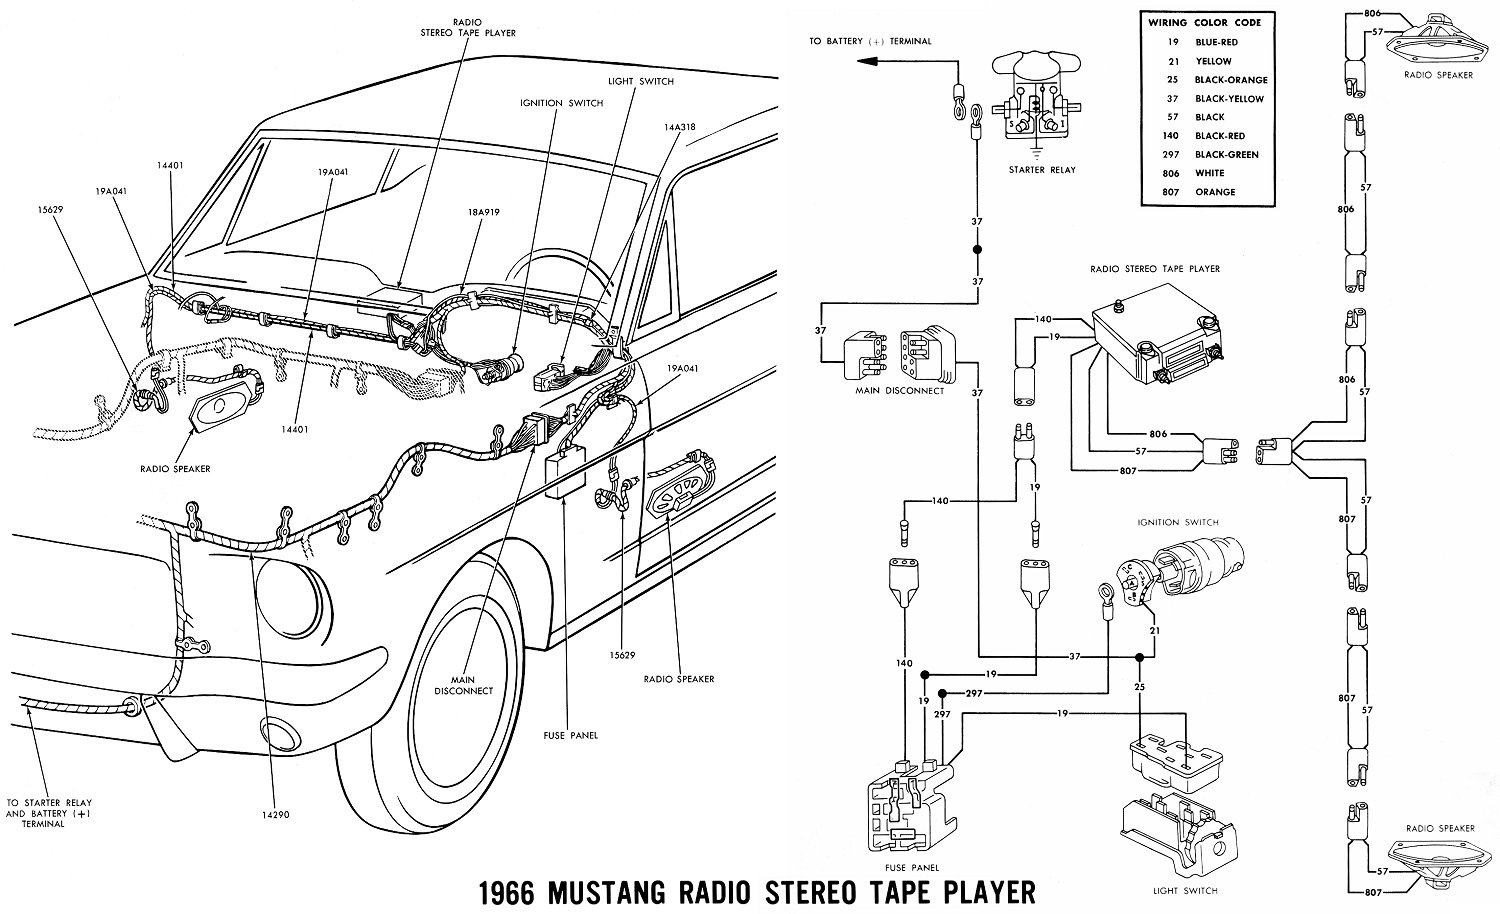 1965 Mustang Wiring Schematic Diagrams 1964 F100 Diagram Vintage Alternator